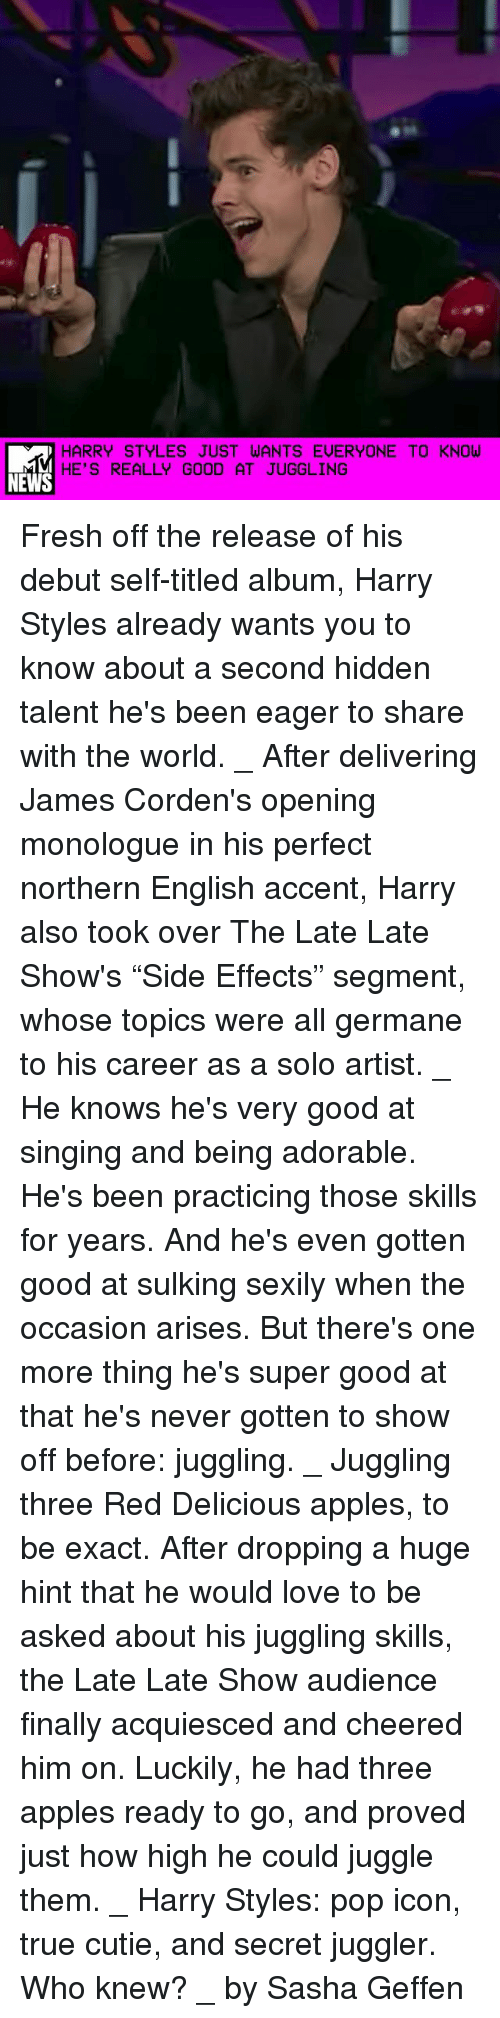 """germane: HARRY STYLES JUST WANTS EUERYONE TO KNOW  HE'S REALLY GOOD AT JUGGLING  NEWS Fresh off the release of his debut self-titled album, Harry Styles already wants you to know about a second hidden talent he's been eager to share with the world. _ After delivering James Corden's opening monologue in his perfect northern English accent, Harry also took over The Late Late Show's """"Side Effects"""" segment, whose topics were all germane to his career as a solo artist. _ He knows he's very good at singing and being adorable. He's been practicing those skills for years. And he's even gotten good at sulking sexily when the occasion arises. But there's one more thing he's super good at that he's never gotten to show off before: juggling. _ Juggling three Red Delicious apples, to be exact. After dropping a huge hint that he would love to be asked about his juggling skills, the Late Late Show audience finally acquiesced and cheered him on. Luckily, he had three apples ready to go, and proved just how high he could juggle them. _ Harry Styles: pop icon, true cutie, and secret juggler. Who knew? _ by Sasha Geffen"""